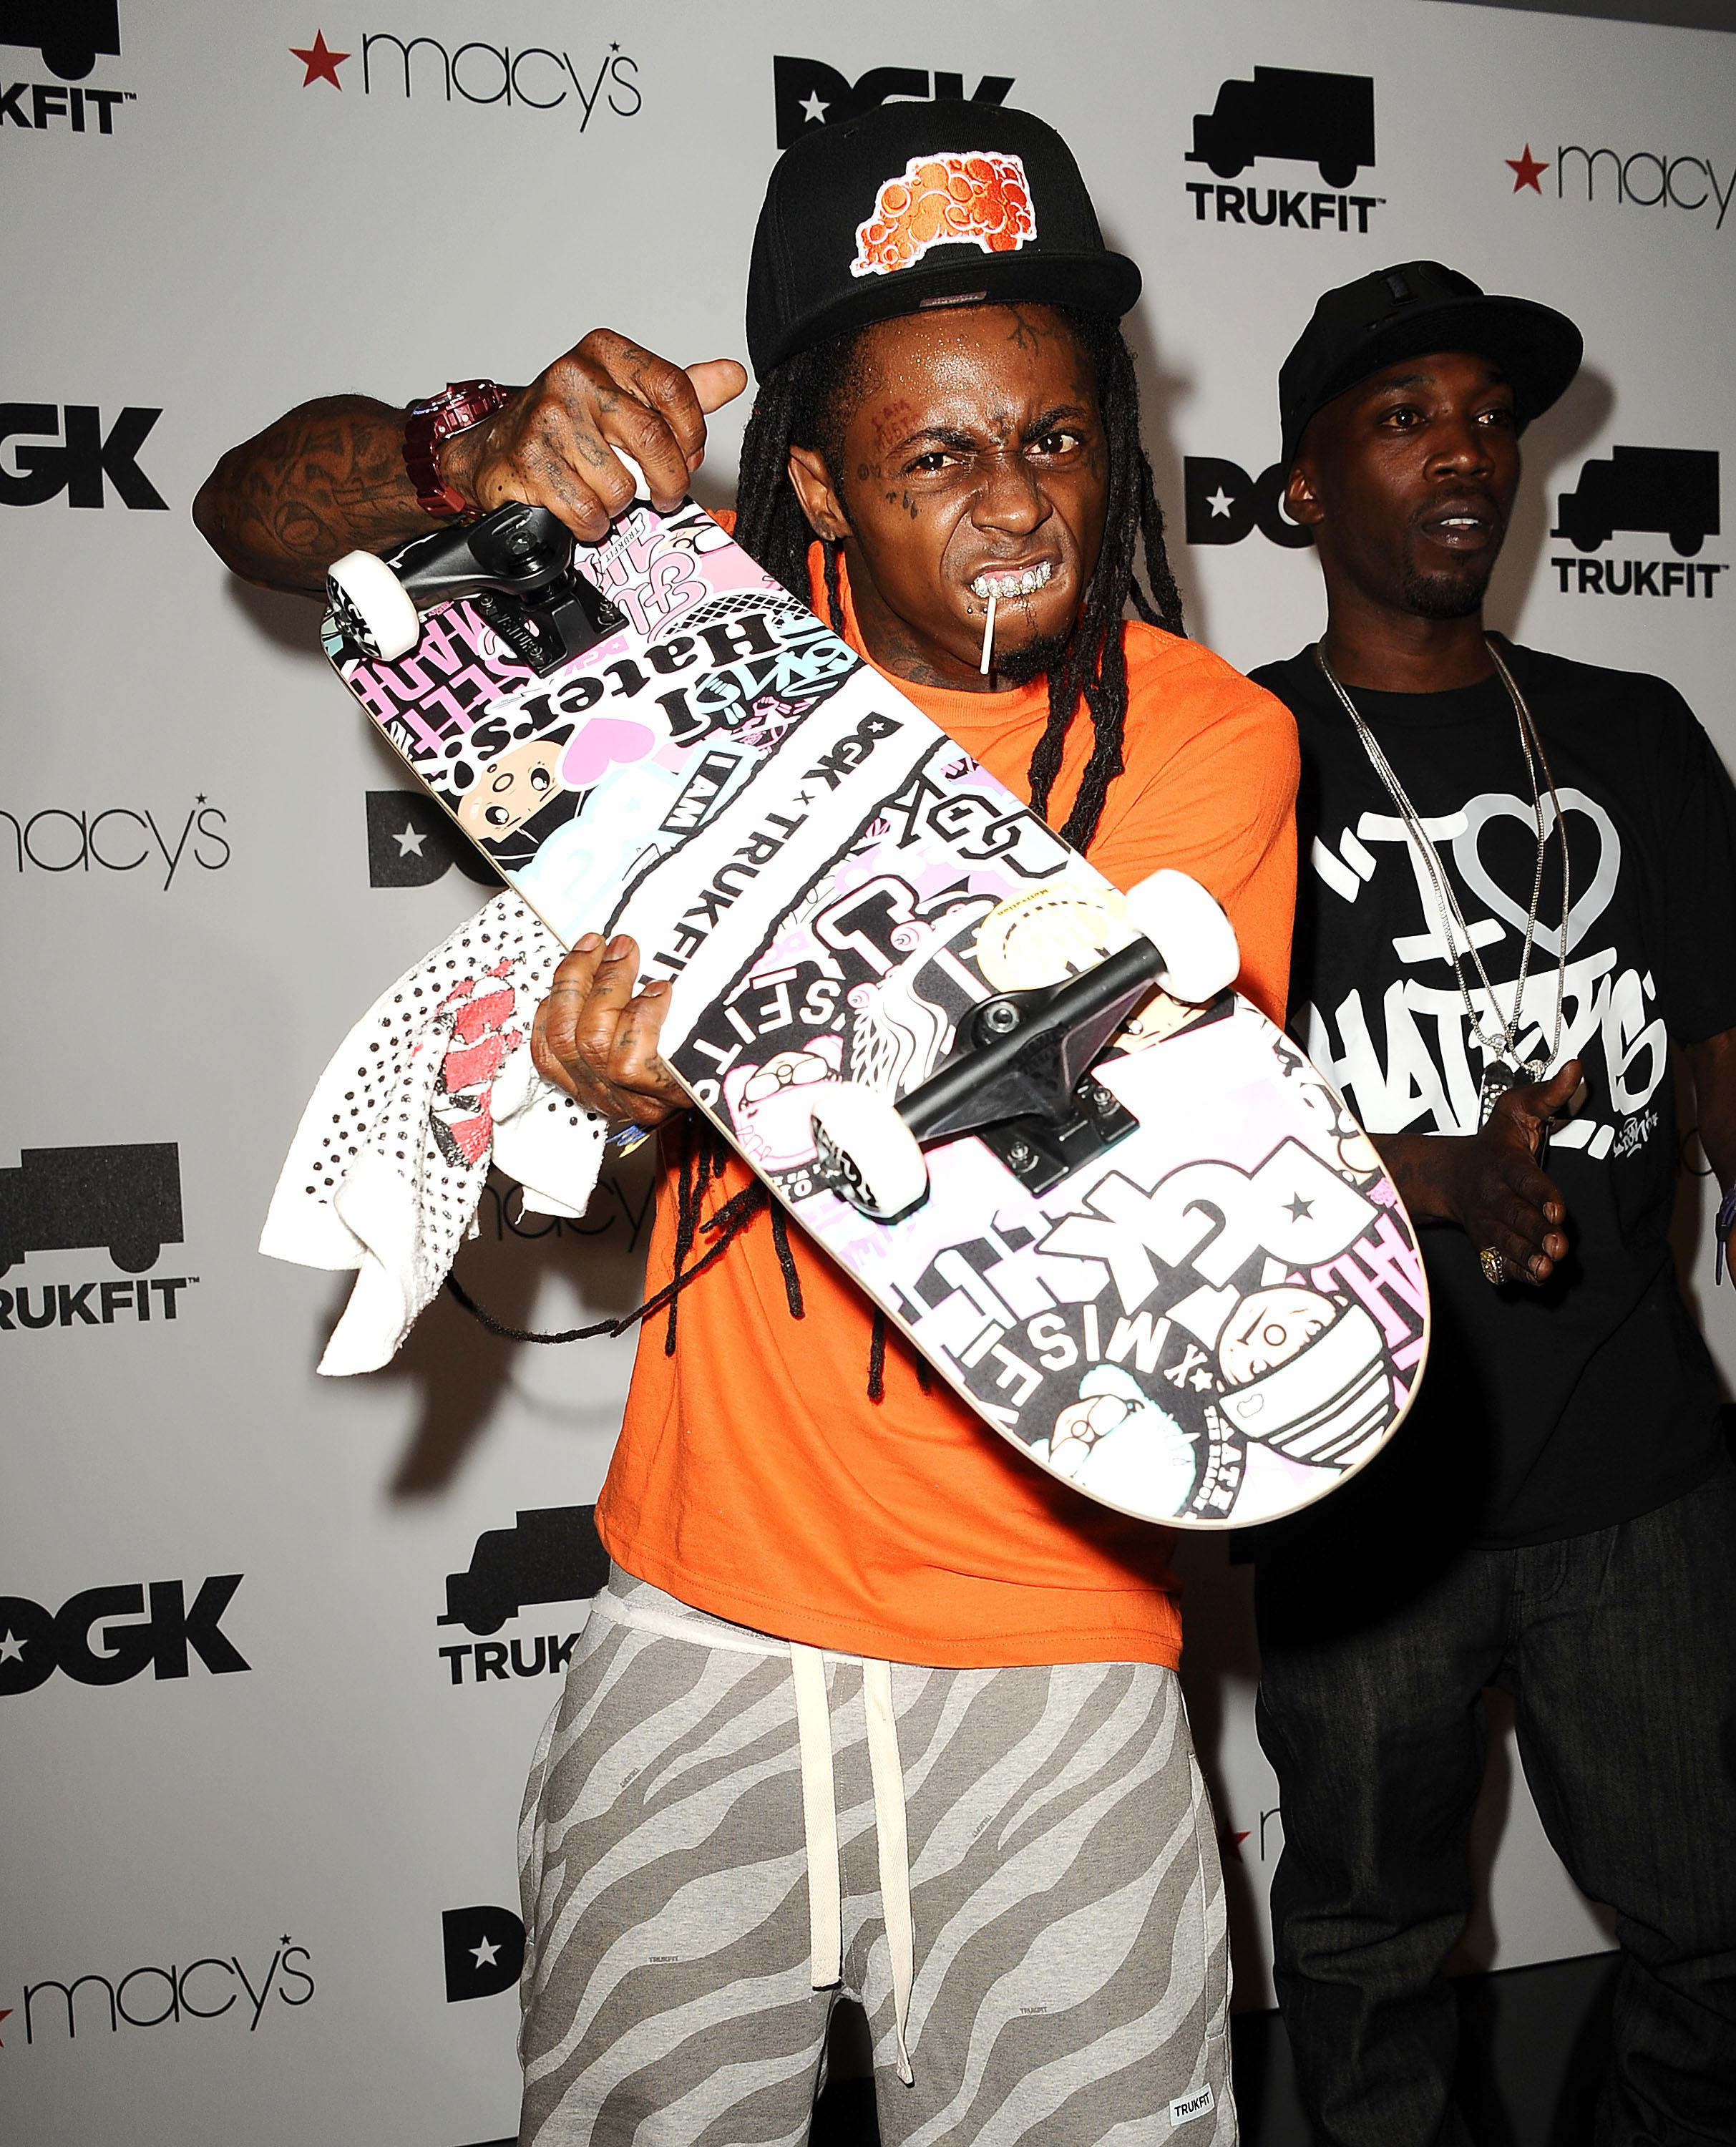 Macy's Beverly Center Welcomes Grammy Award Winning Hip Hop Icon Lil Wayne And Professional Skateboarder Stevie Williams